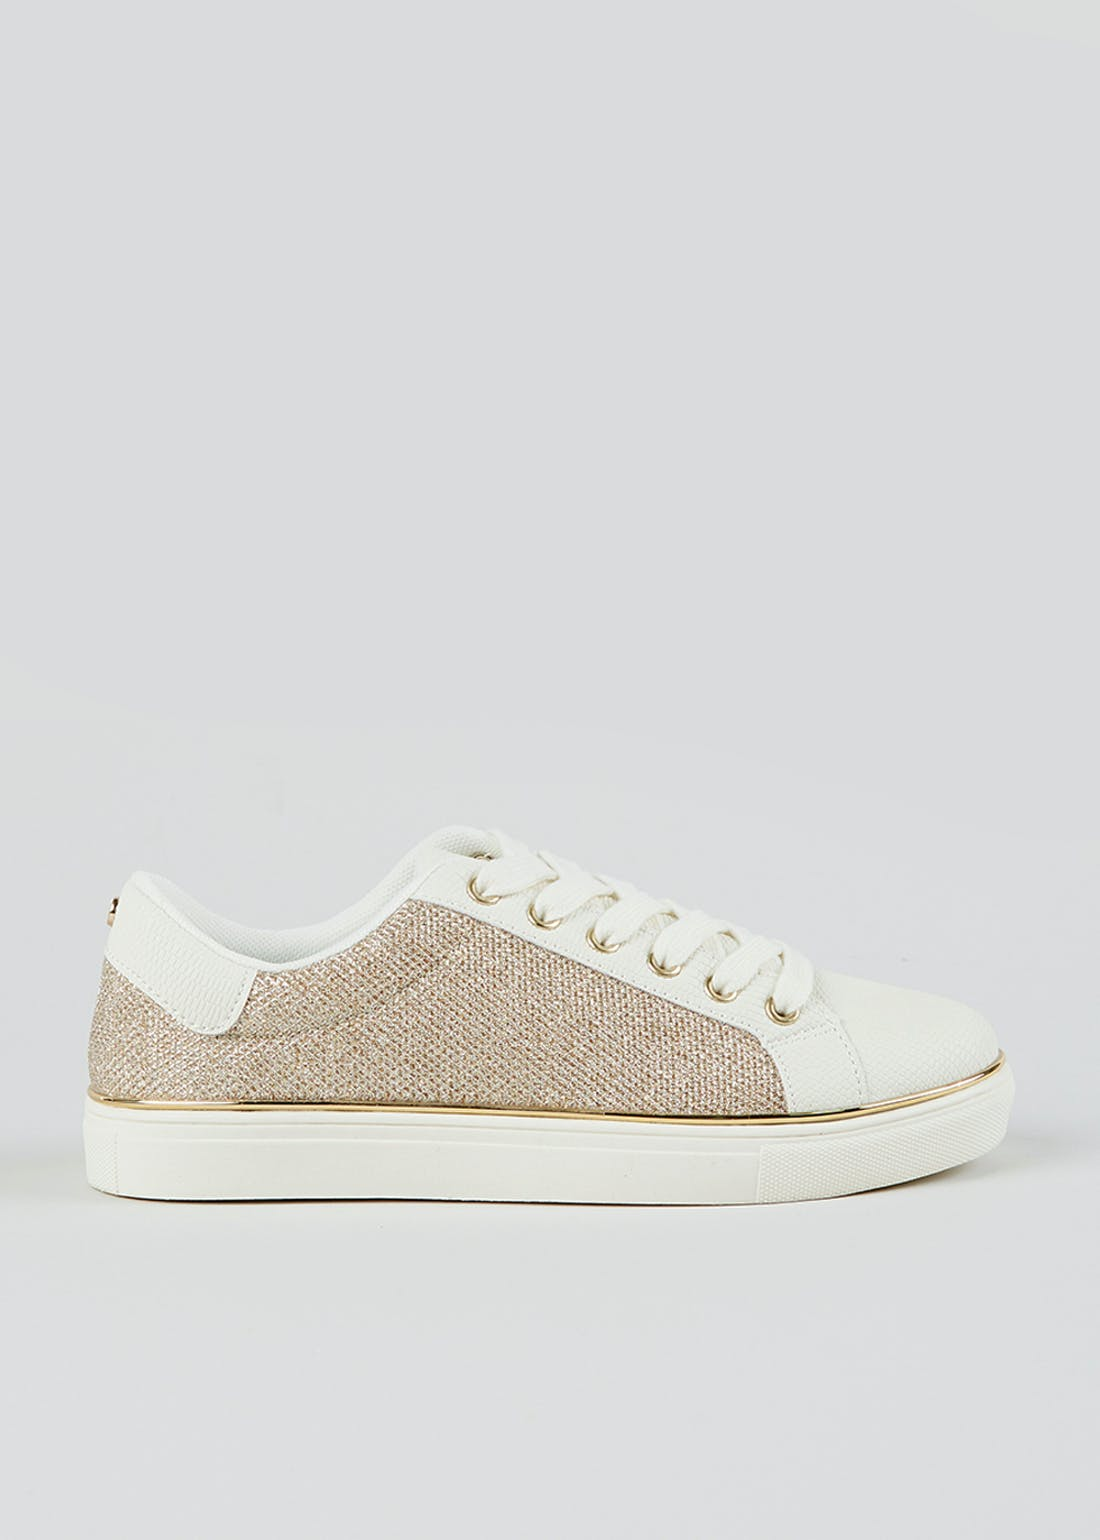 White & Gold Glitter Trainers